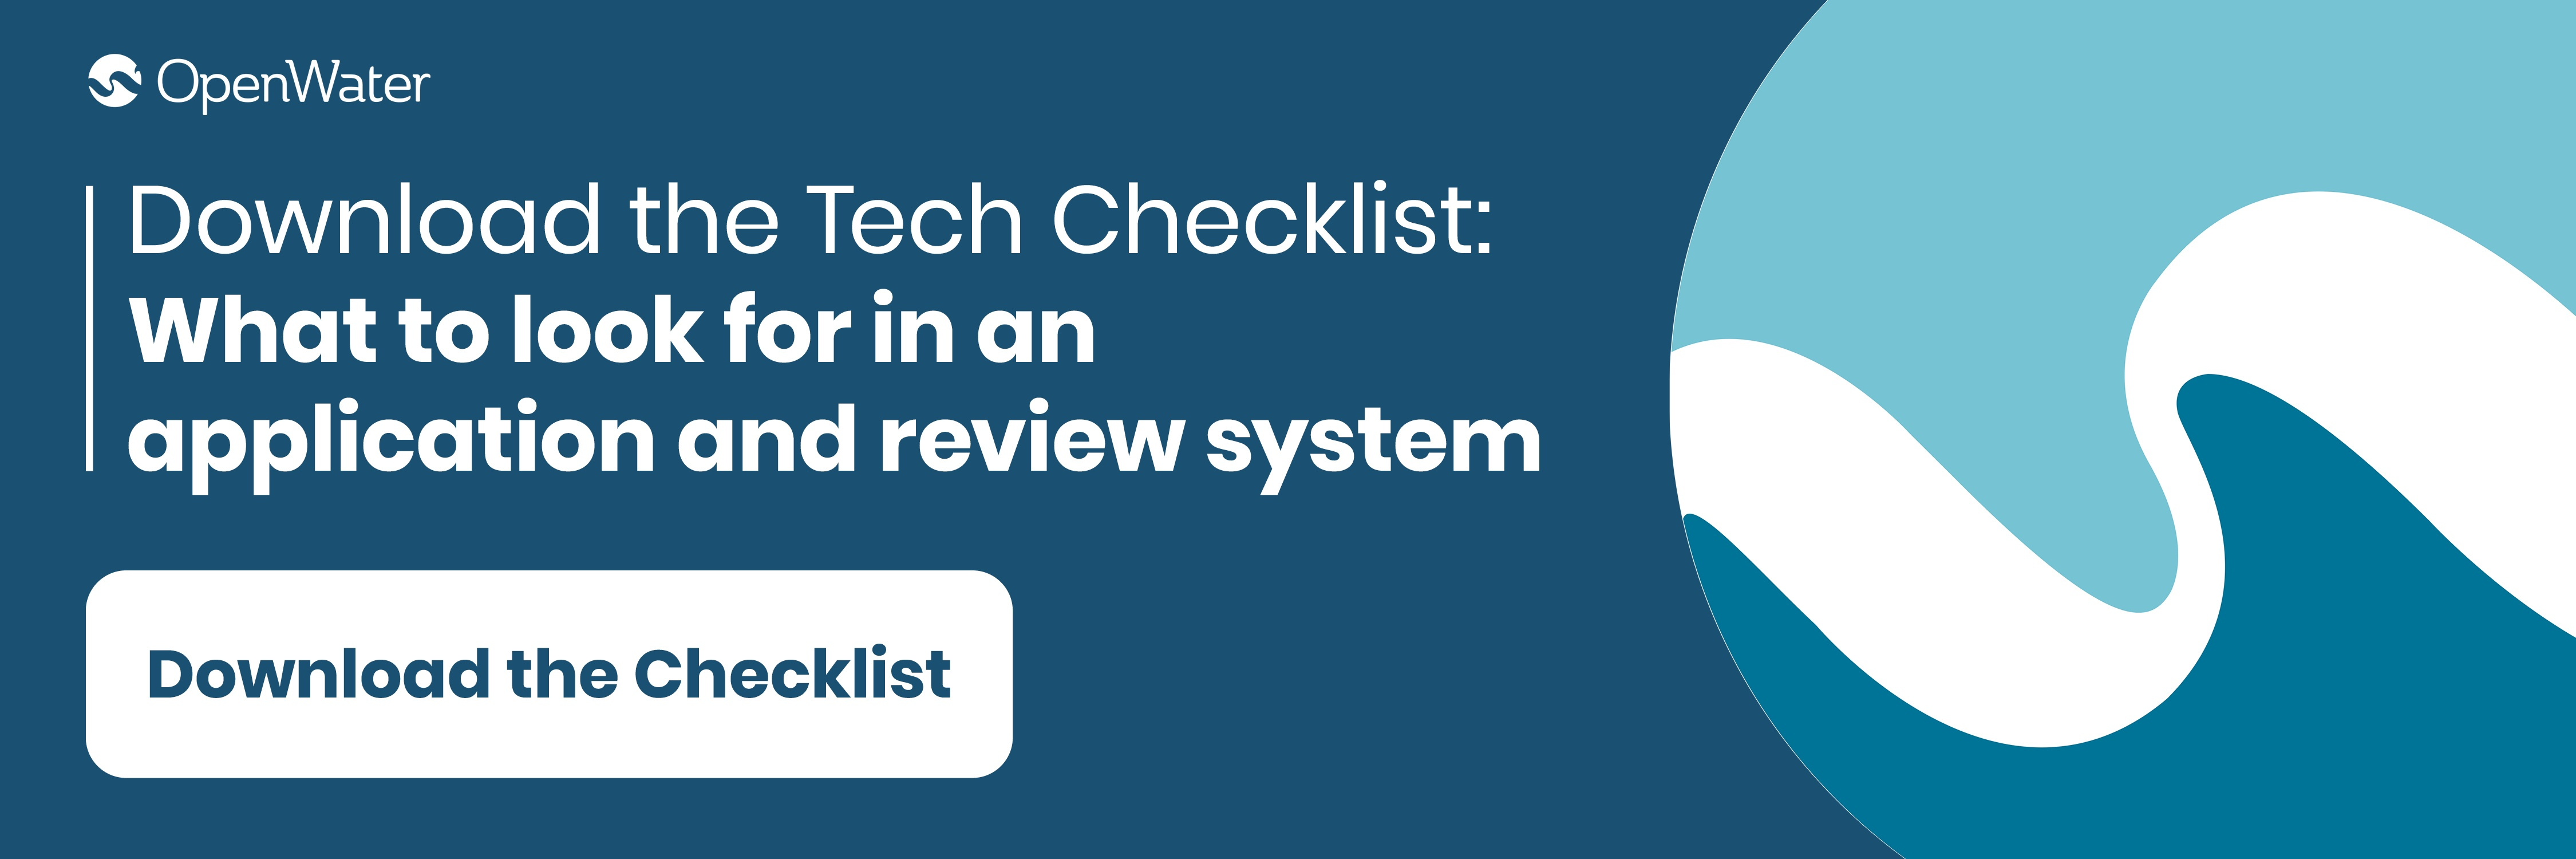 Tech Checklist - What to Look for in an Application and Review System